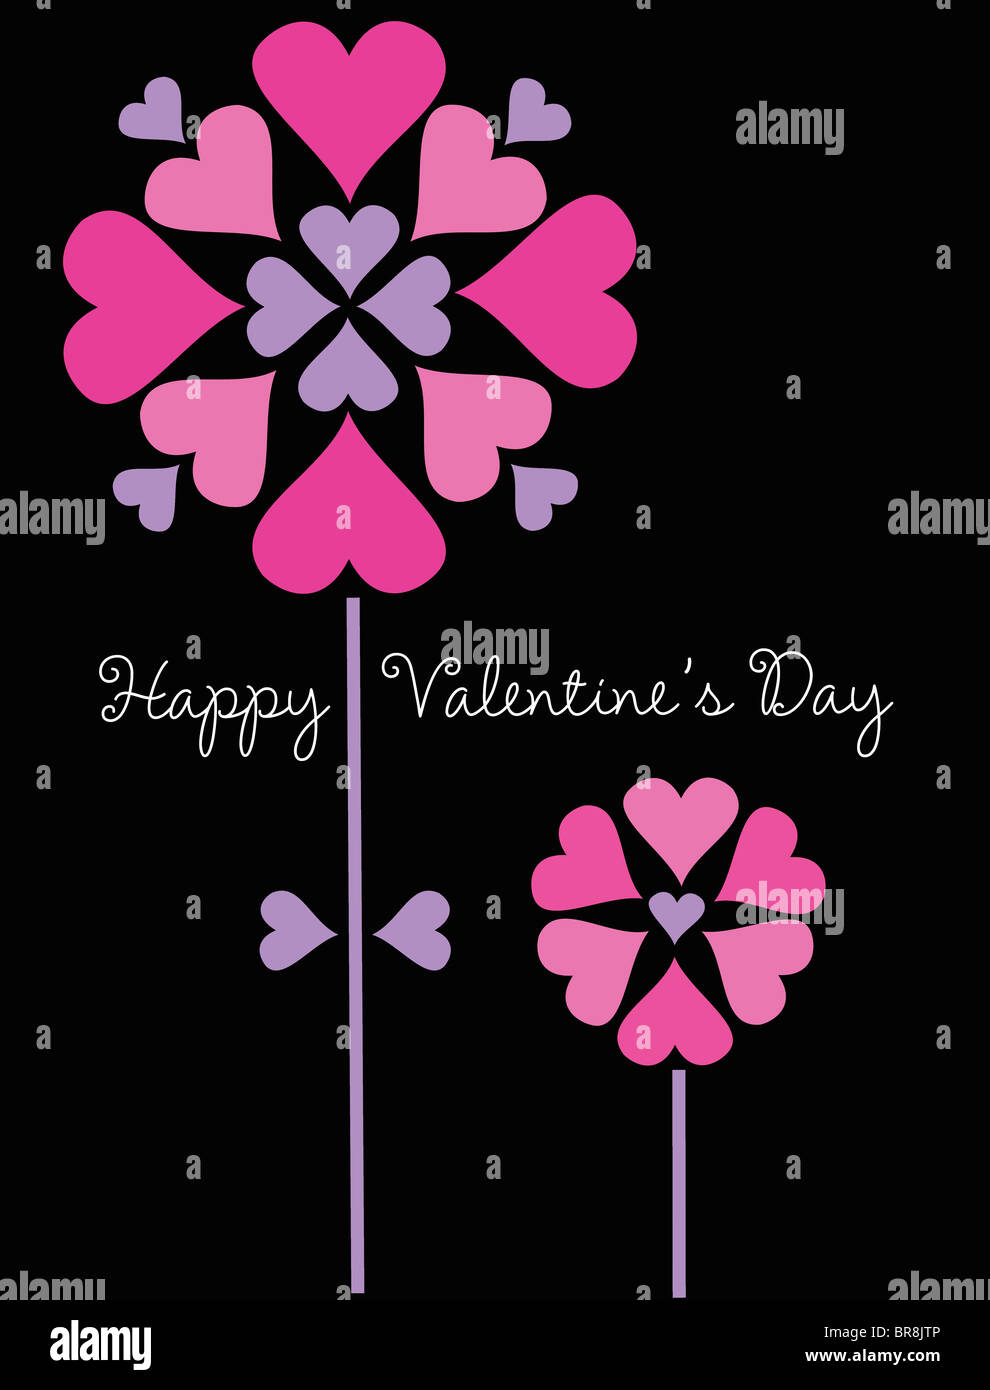 Two Flowers Made Of Pink And Purple Hearts On A Black Background